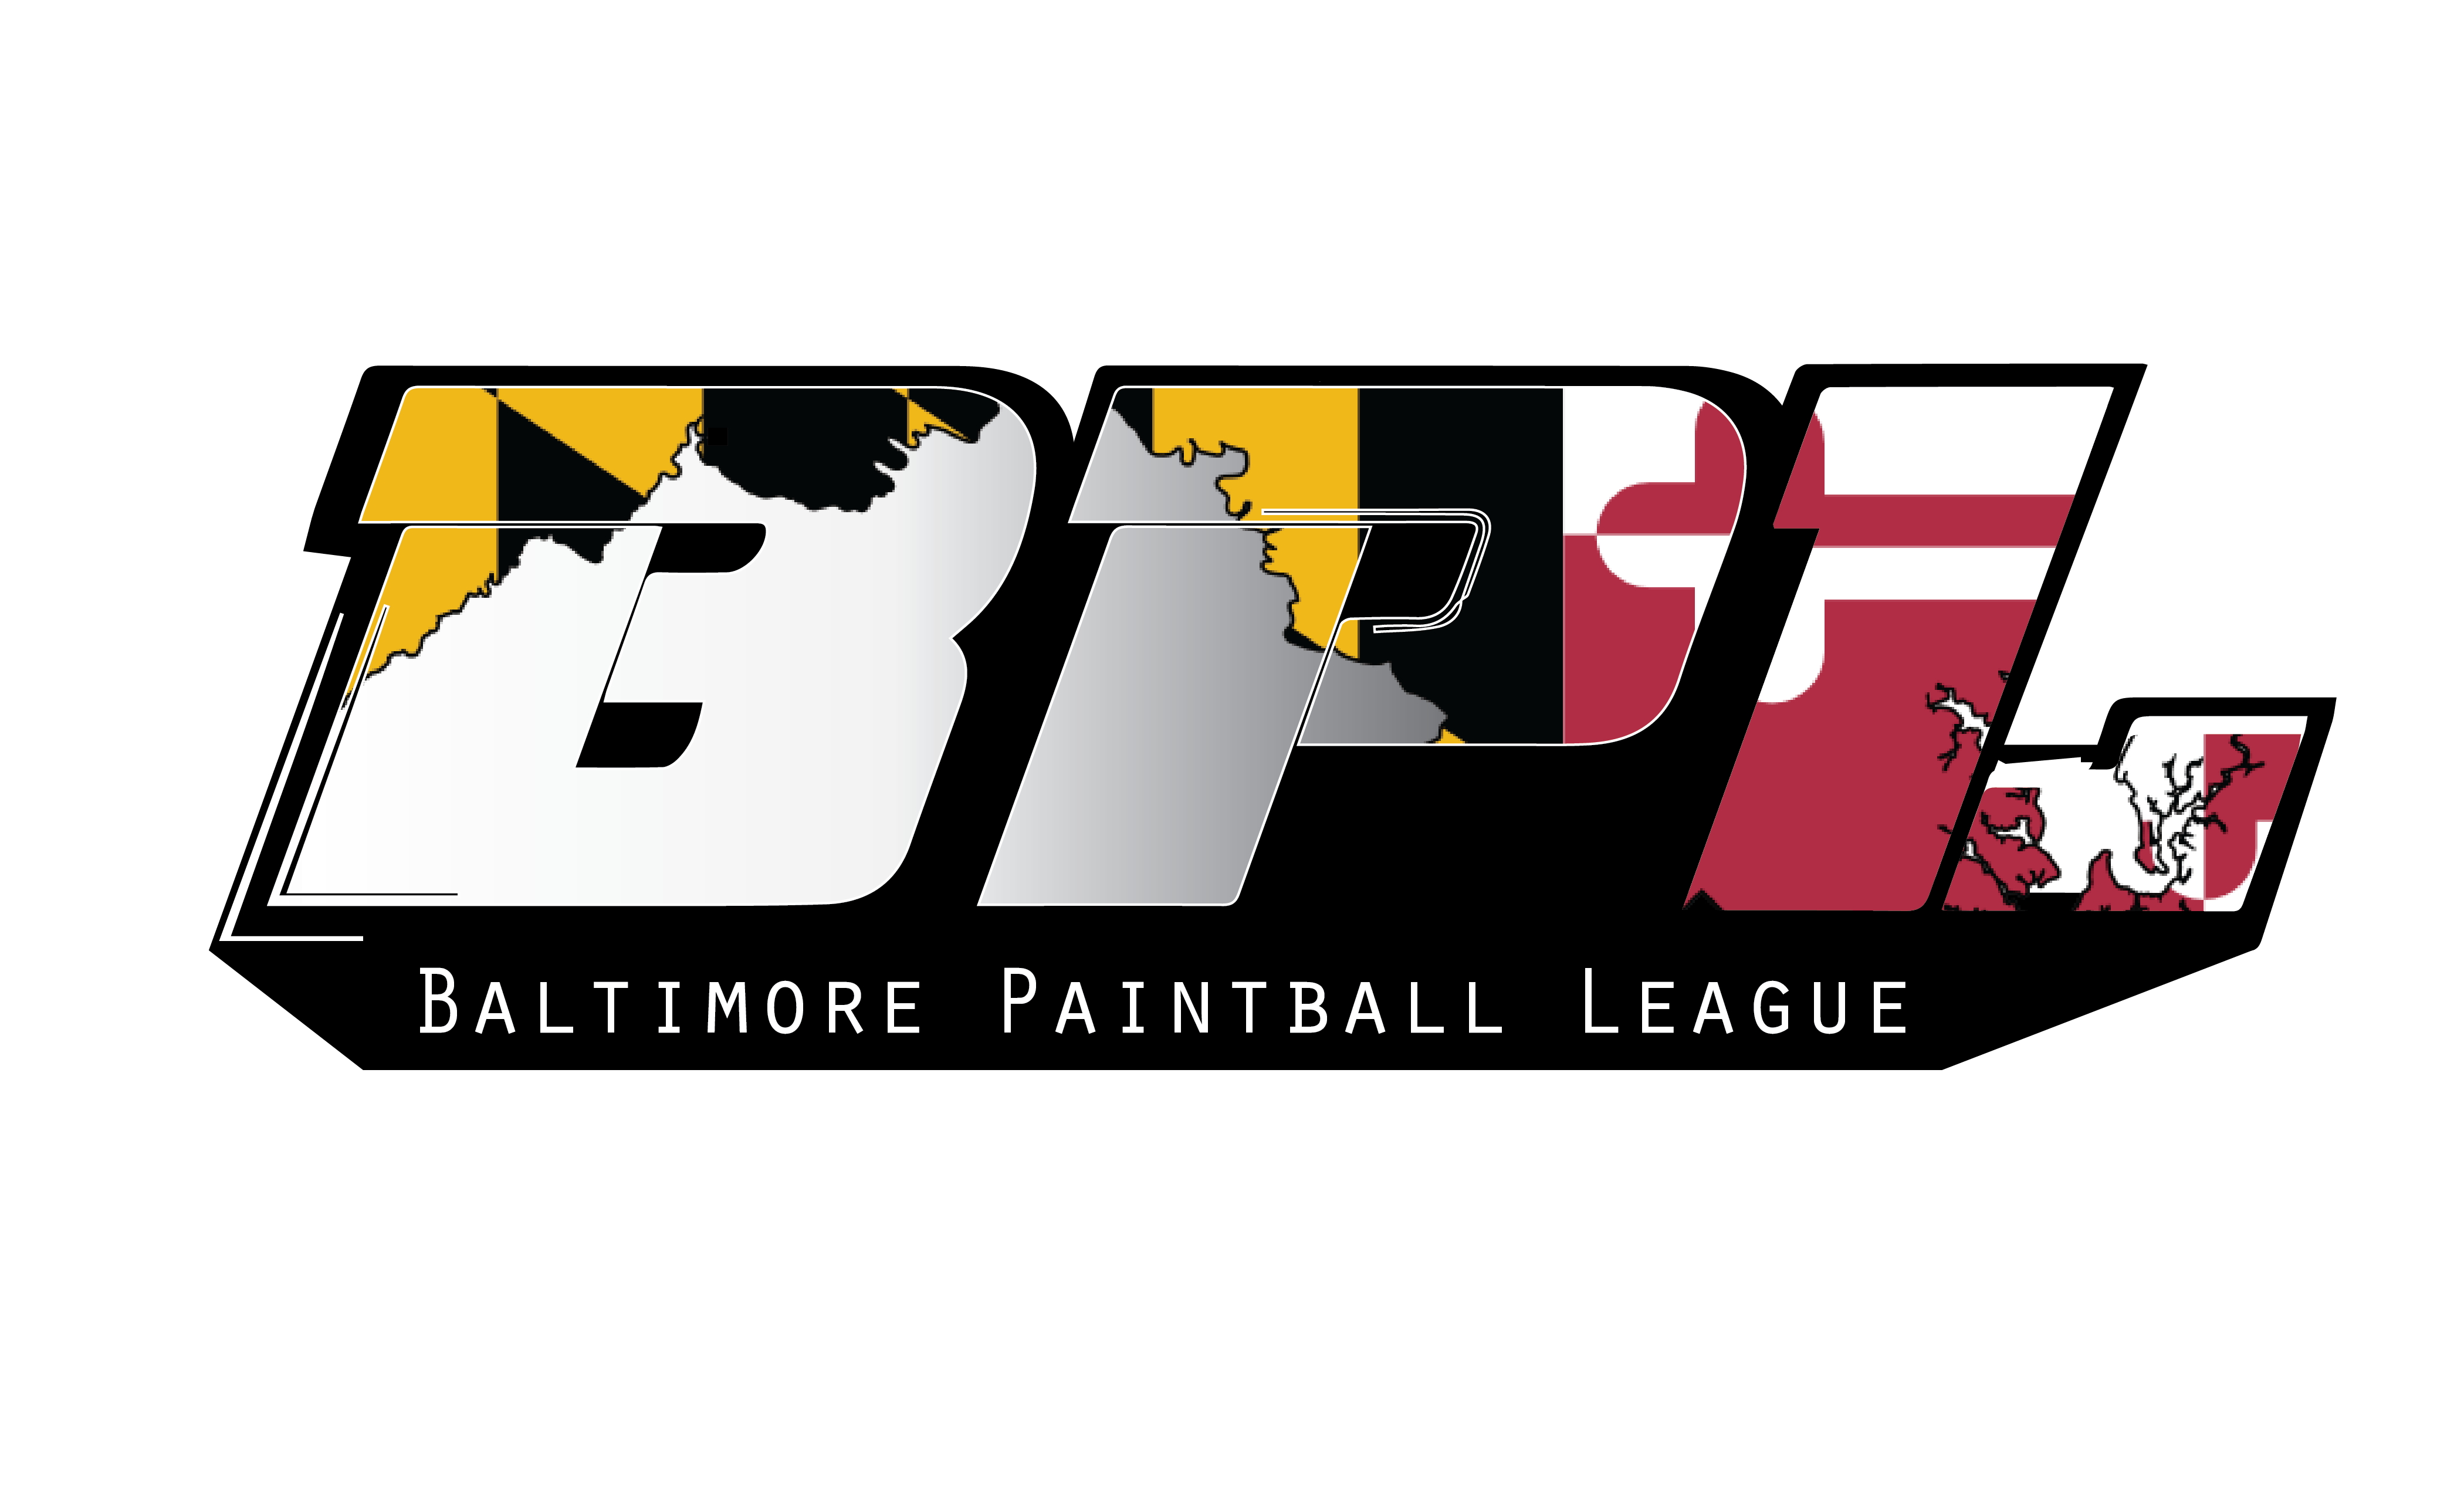 Baltimore Paintball League